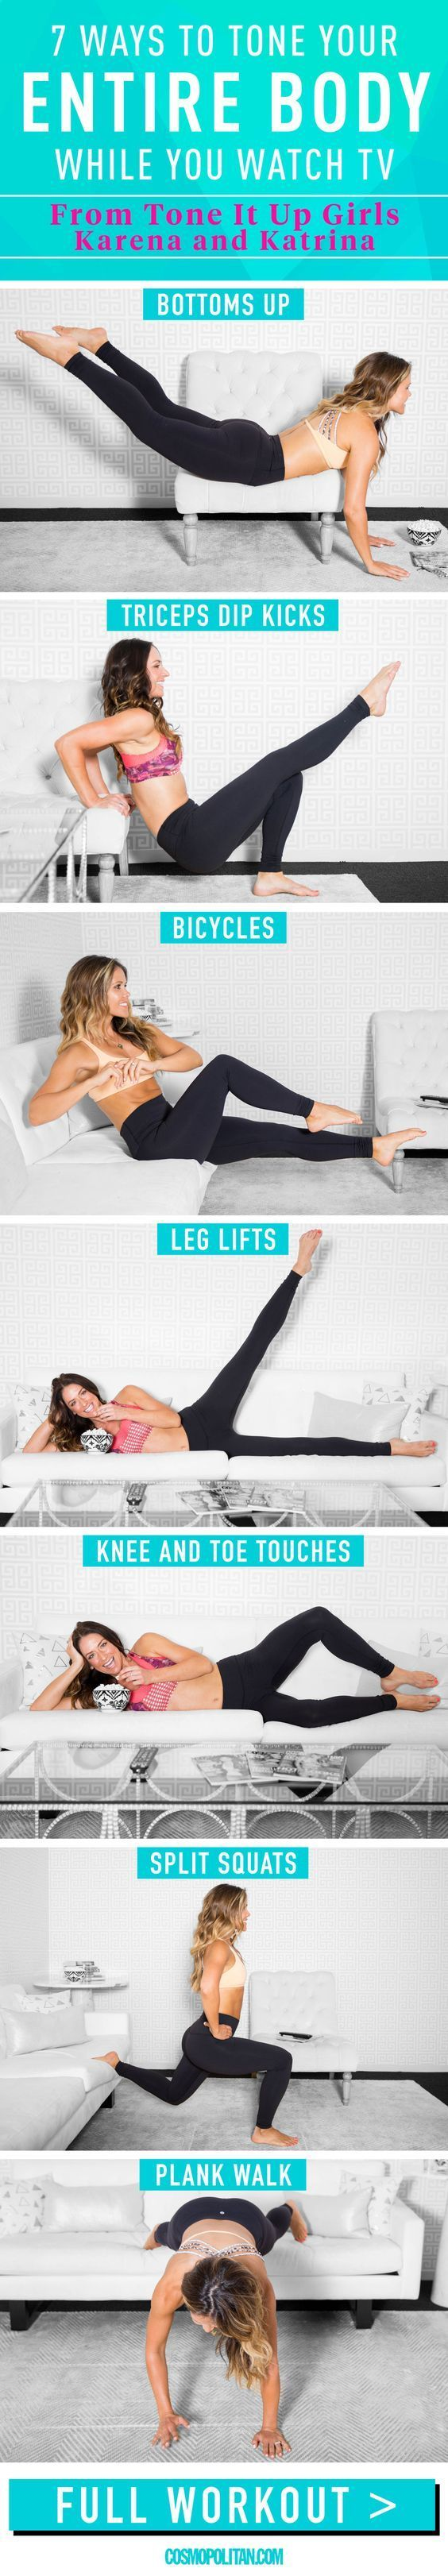 QUICK AT HOME WORKOUT: Try these living-room friendly exercises next time you binge watch your favorite show. This at home, inside workout is perfect for days with bad weather, if you're trying to save money and don't have a gym membership, or you're just